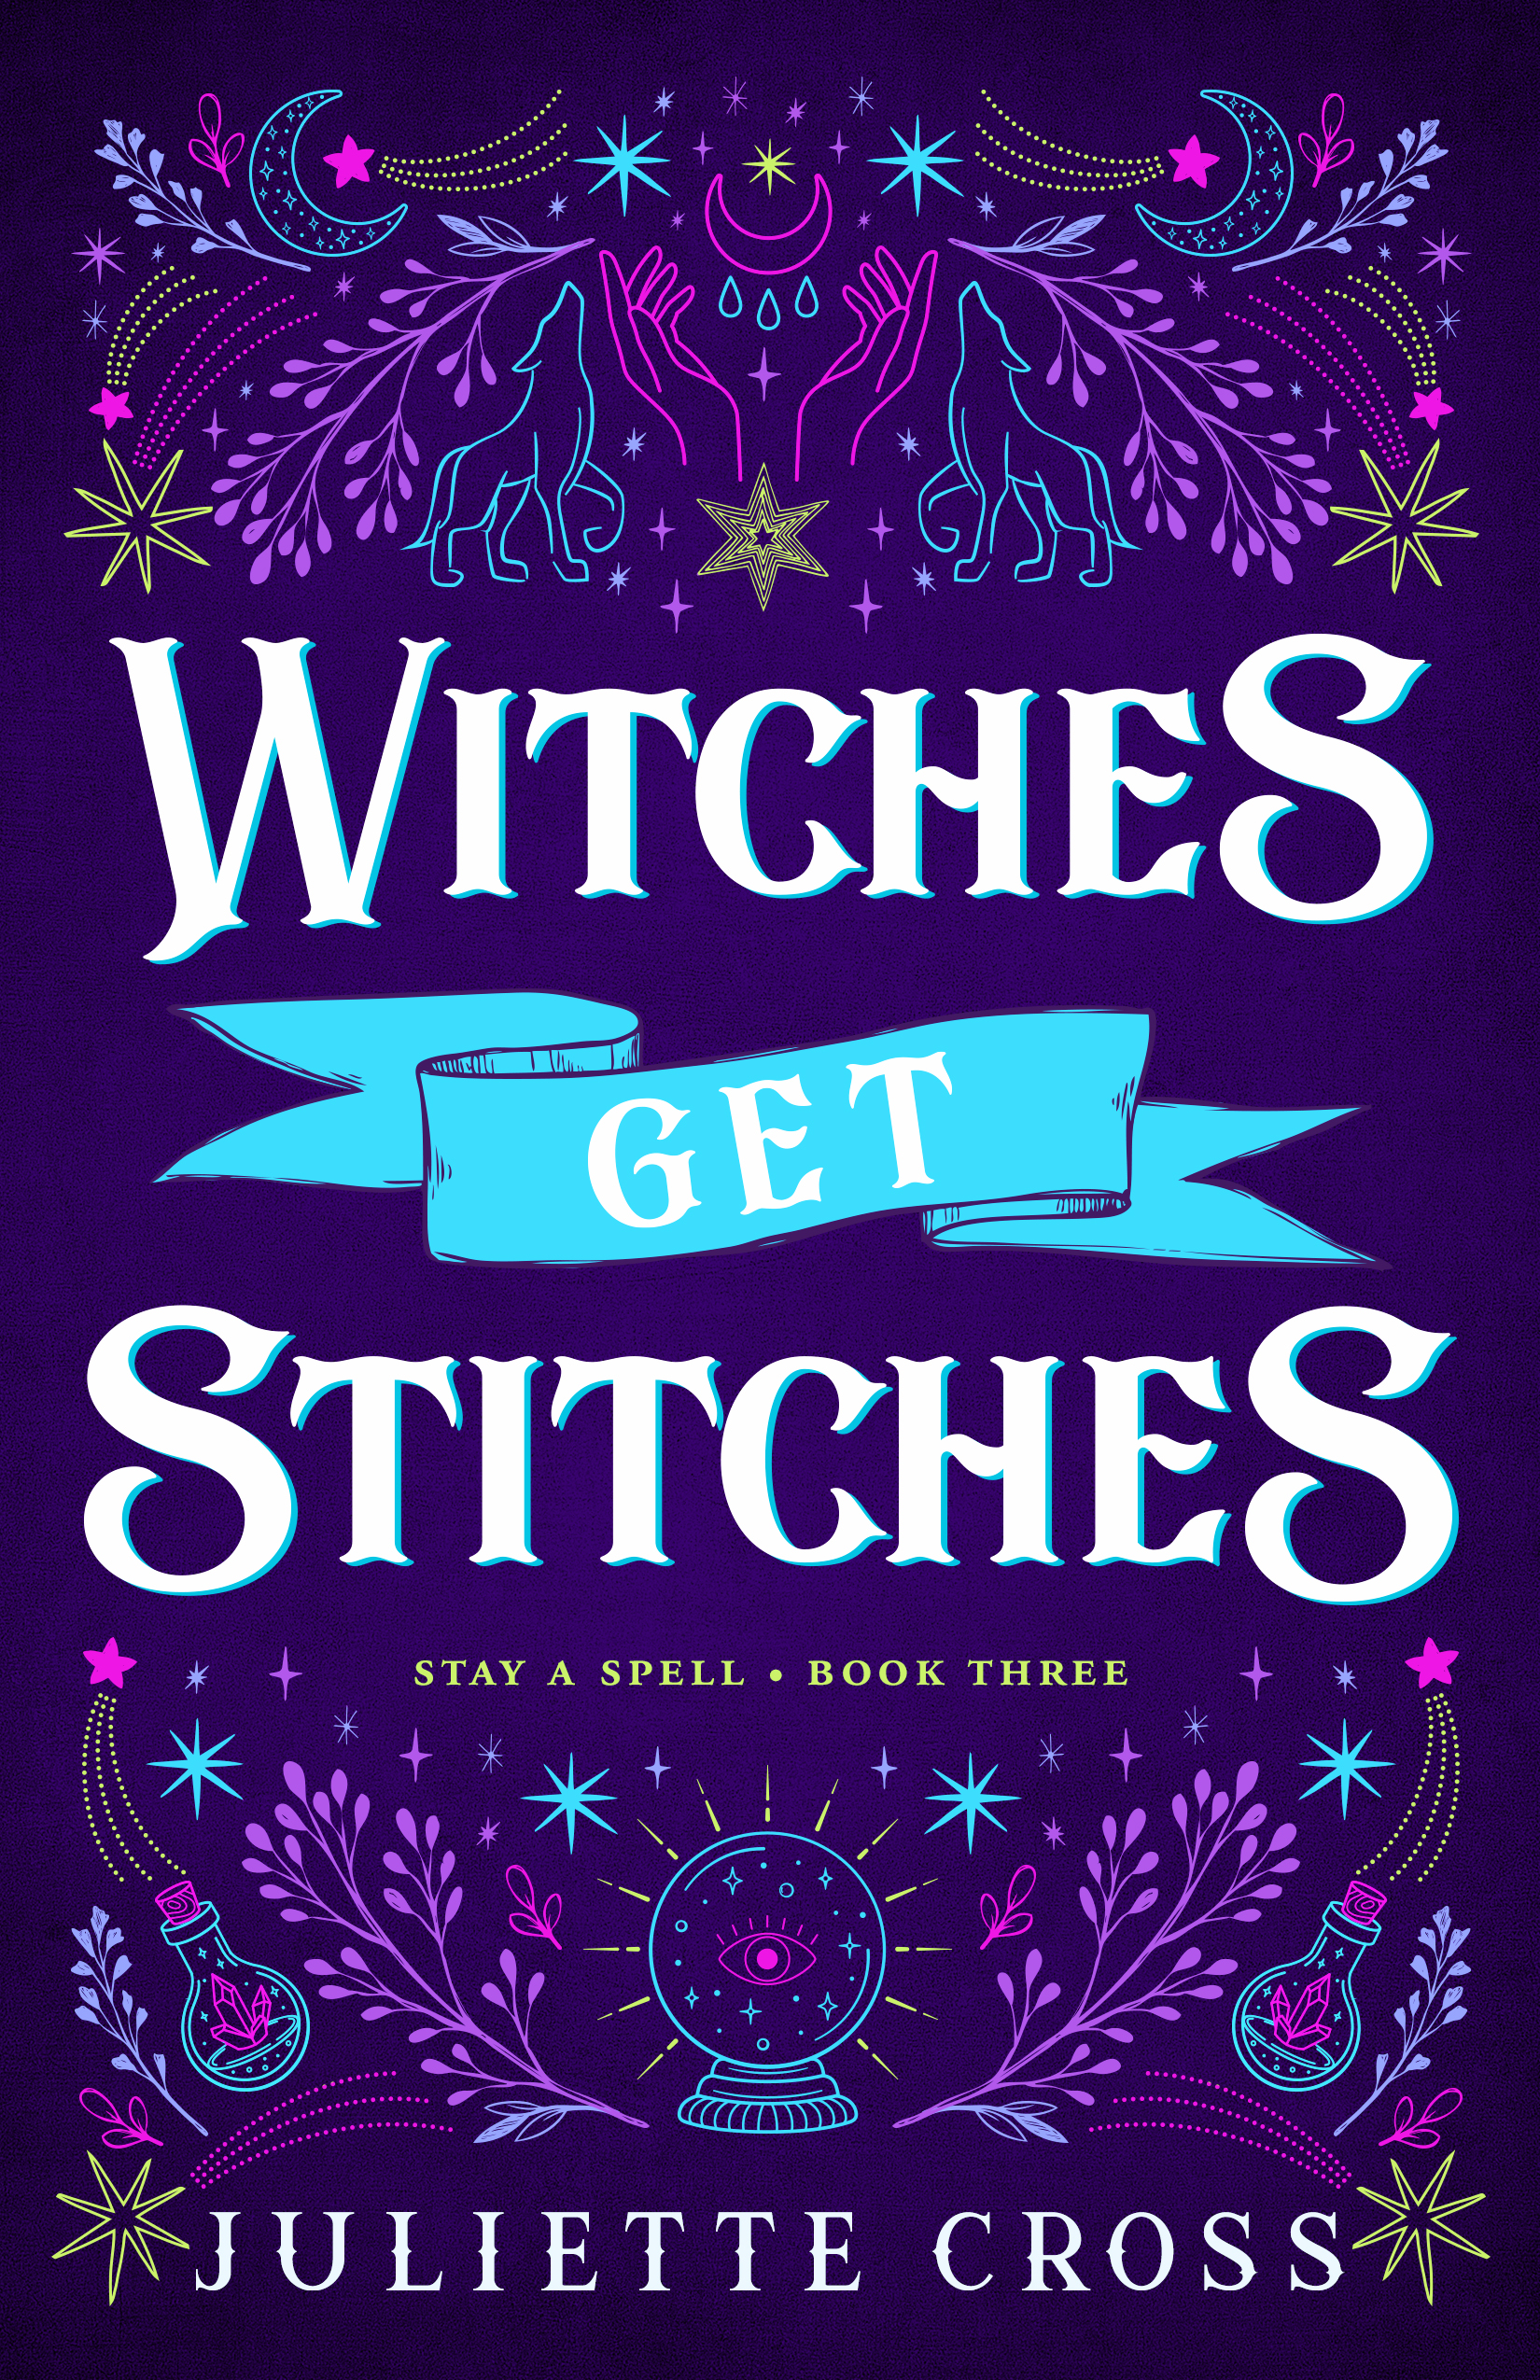 Witches Get Stitches Book Cover